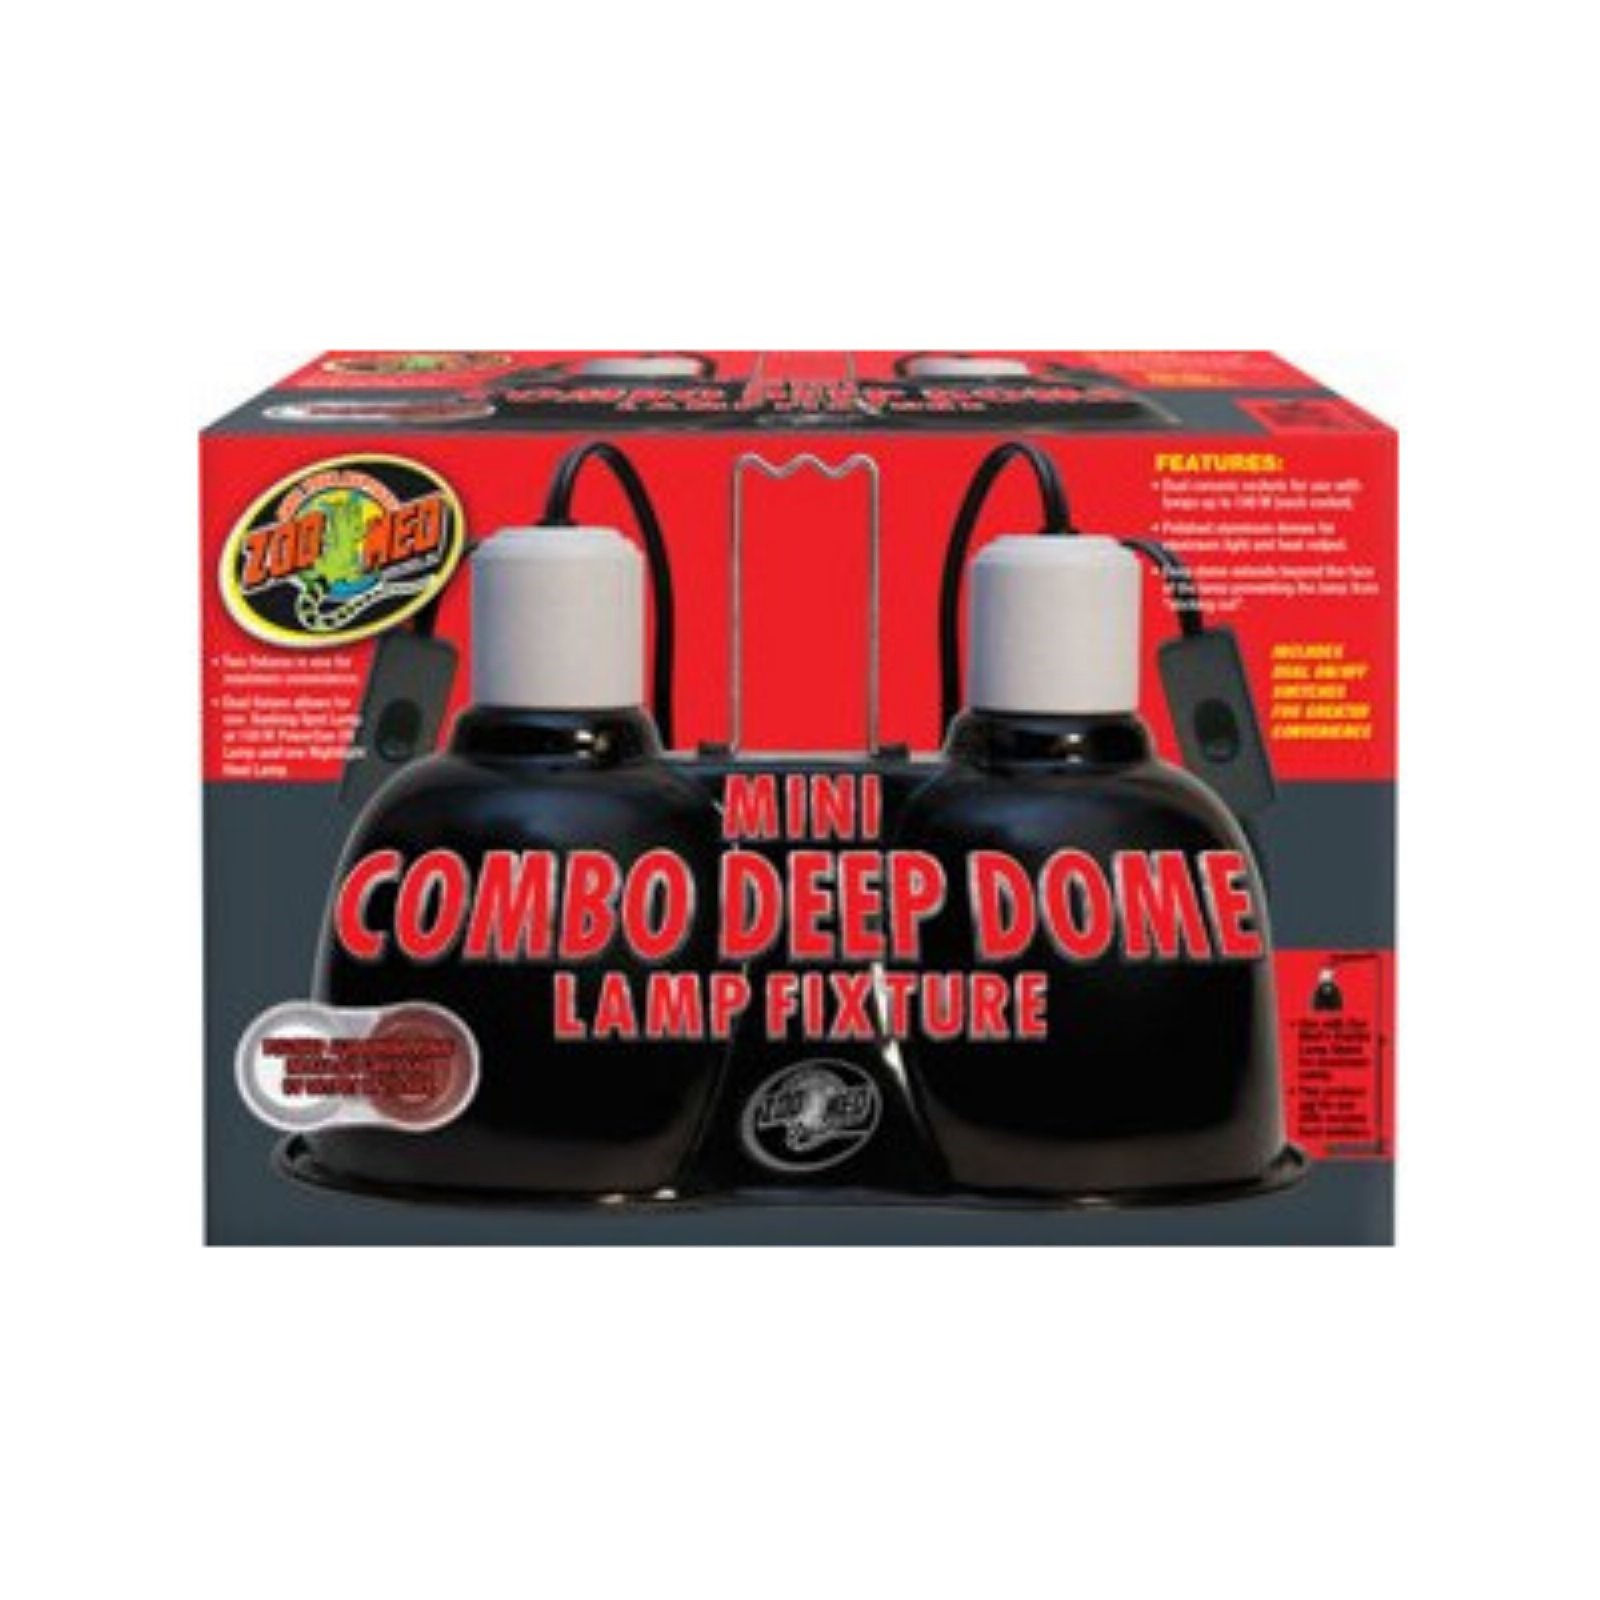 Zoo Med Mini Combo Deep Dome Dual Lamp Fixture, 100 Watt